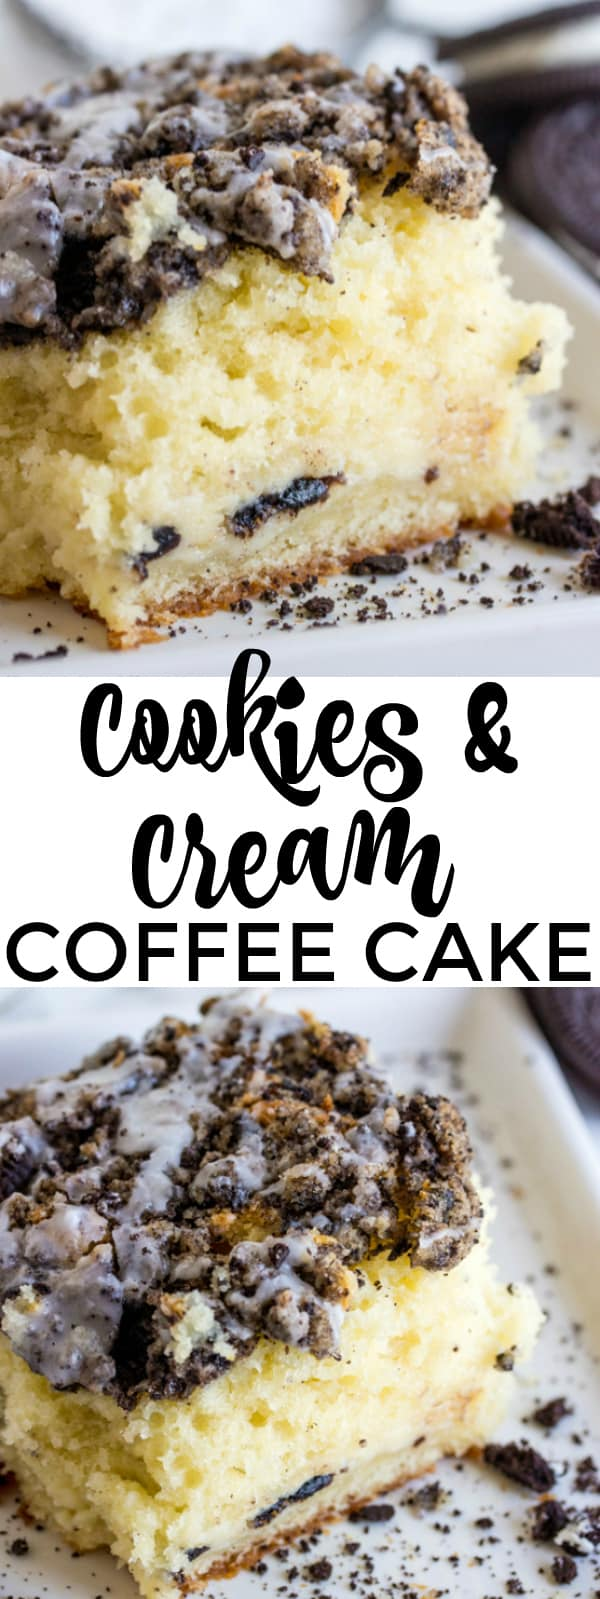 Cookies and Cream Coffee Cake collage with words in middle